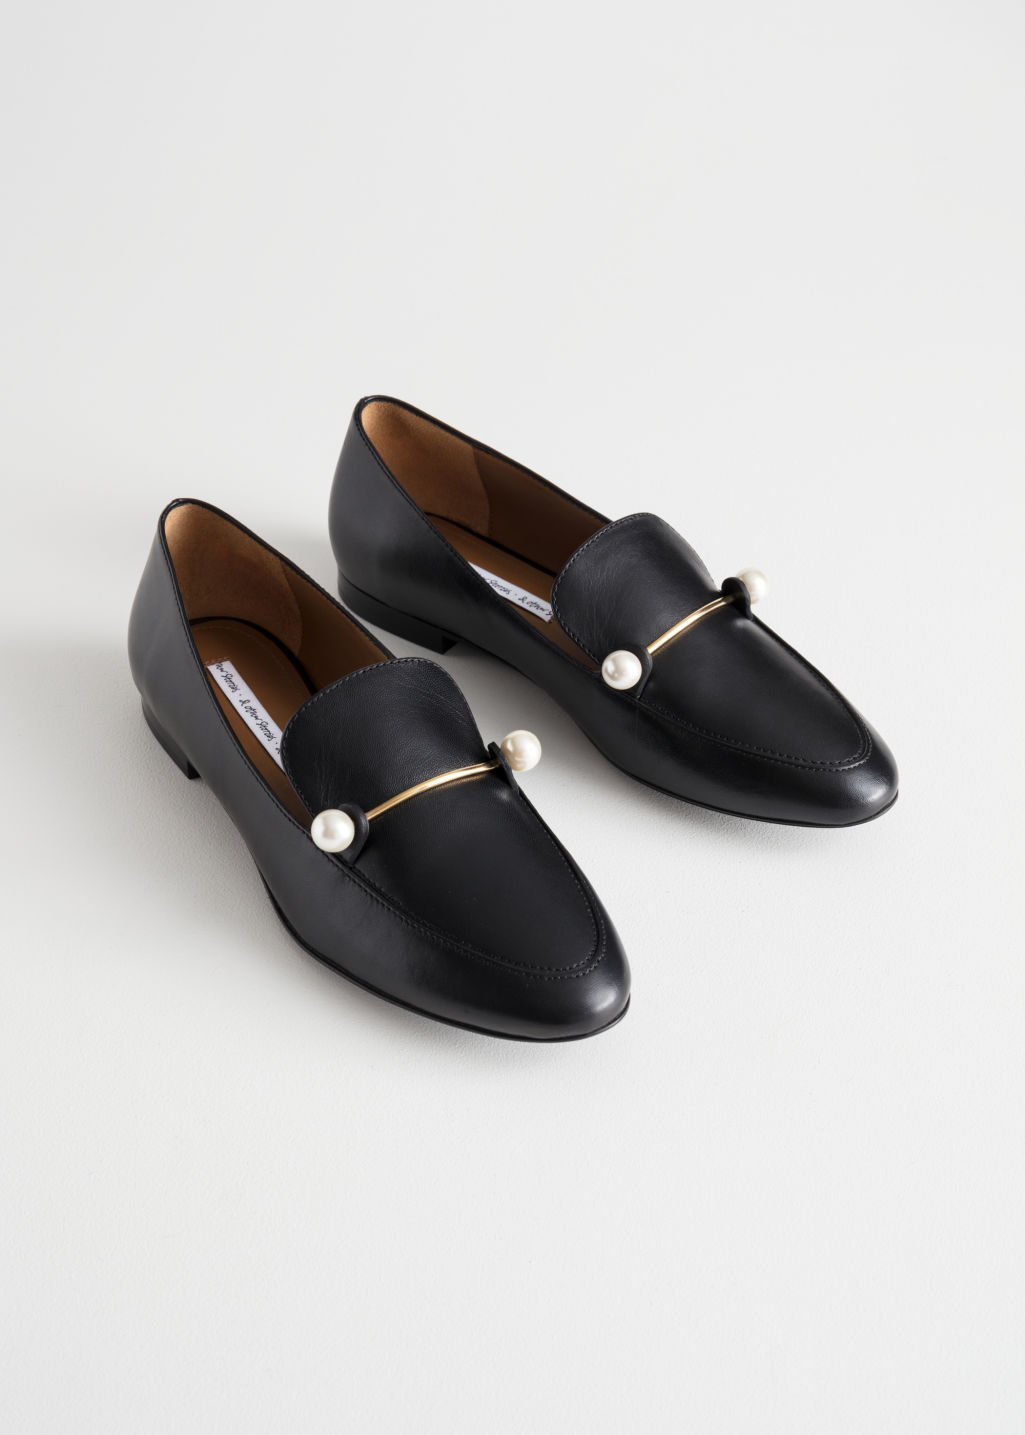 & Other Stories Duo Pearl Buckle Loafers